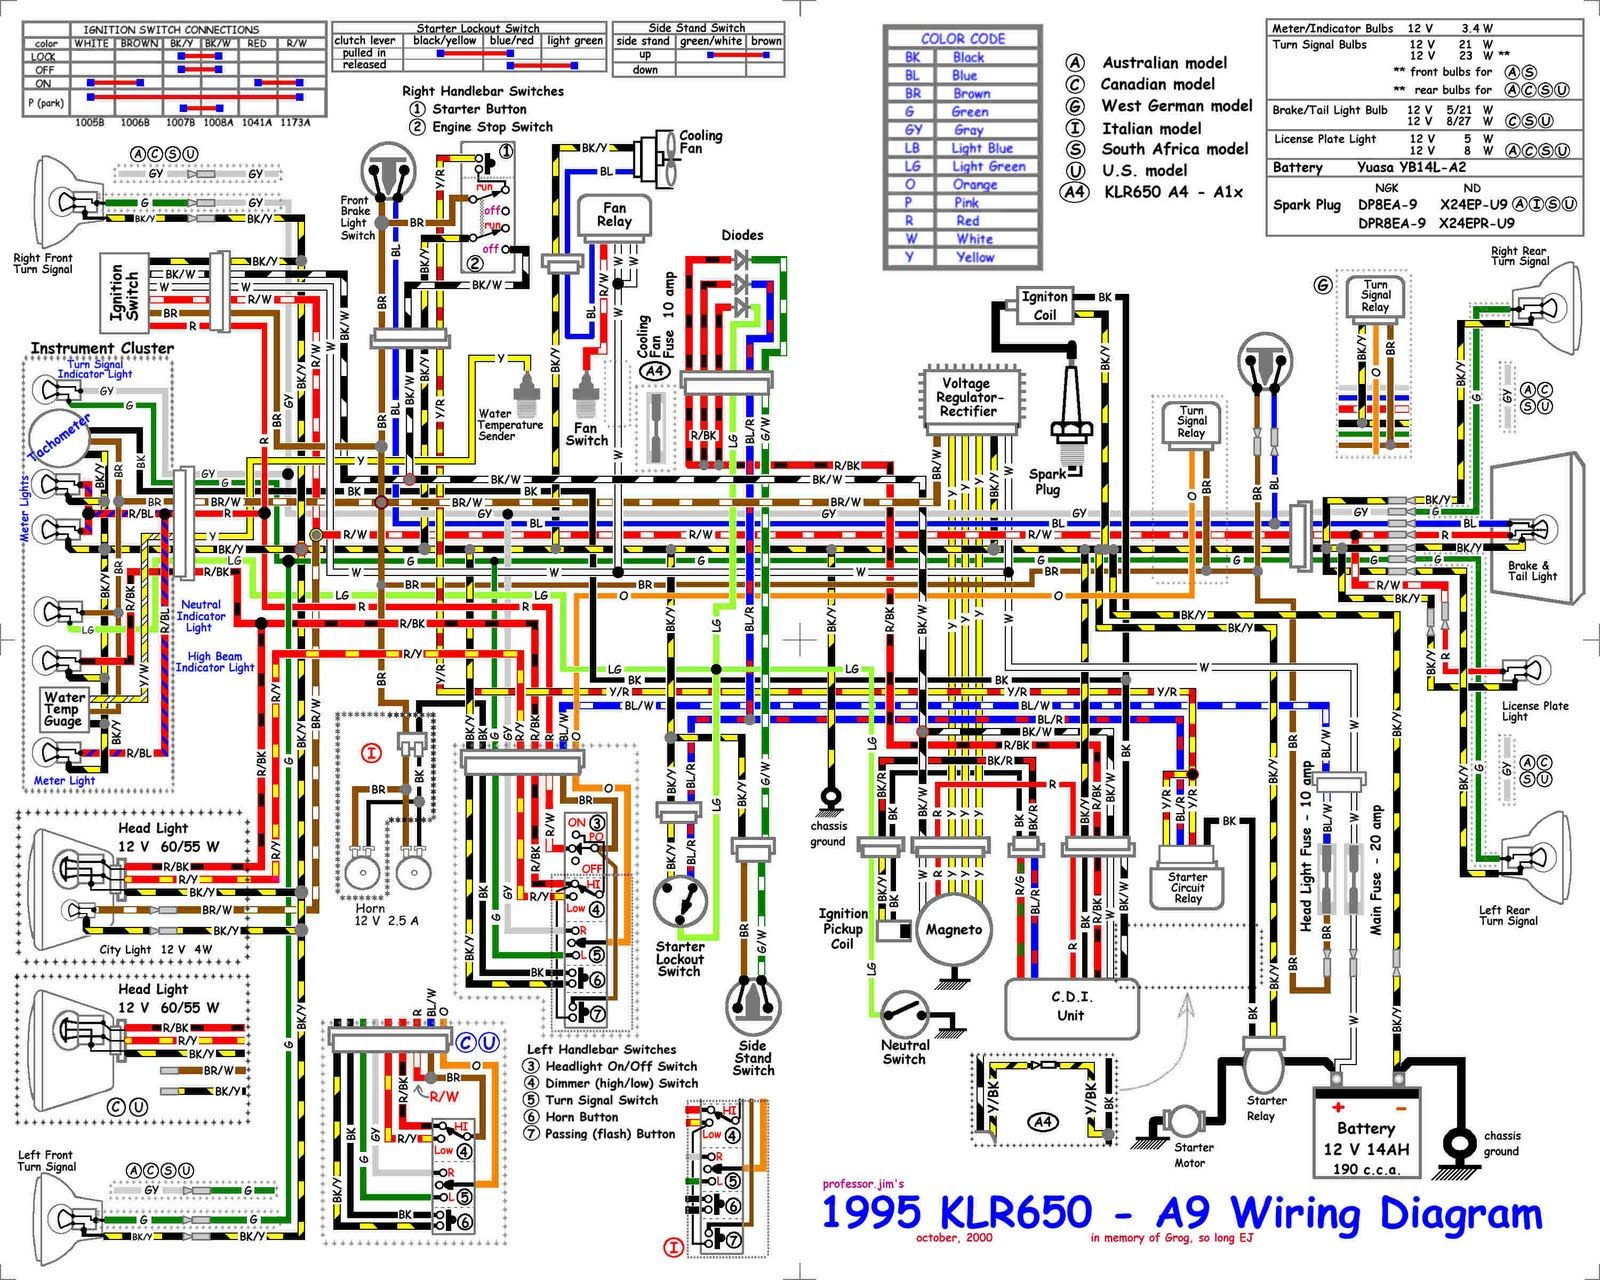 medium resolution of 1998 chevy wiring diagram wiring diagram 1998 chevy cavalier wiring diagram 1998 chevrolet wiring diagram